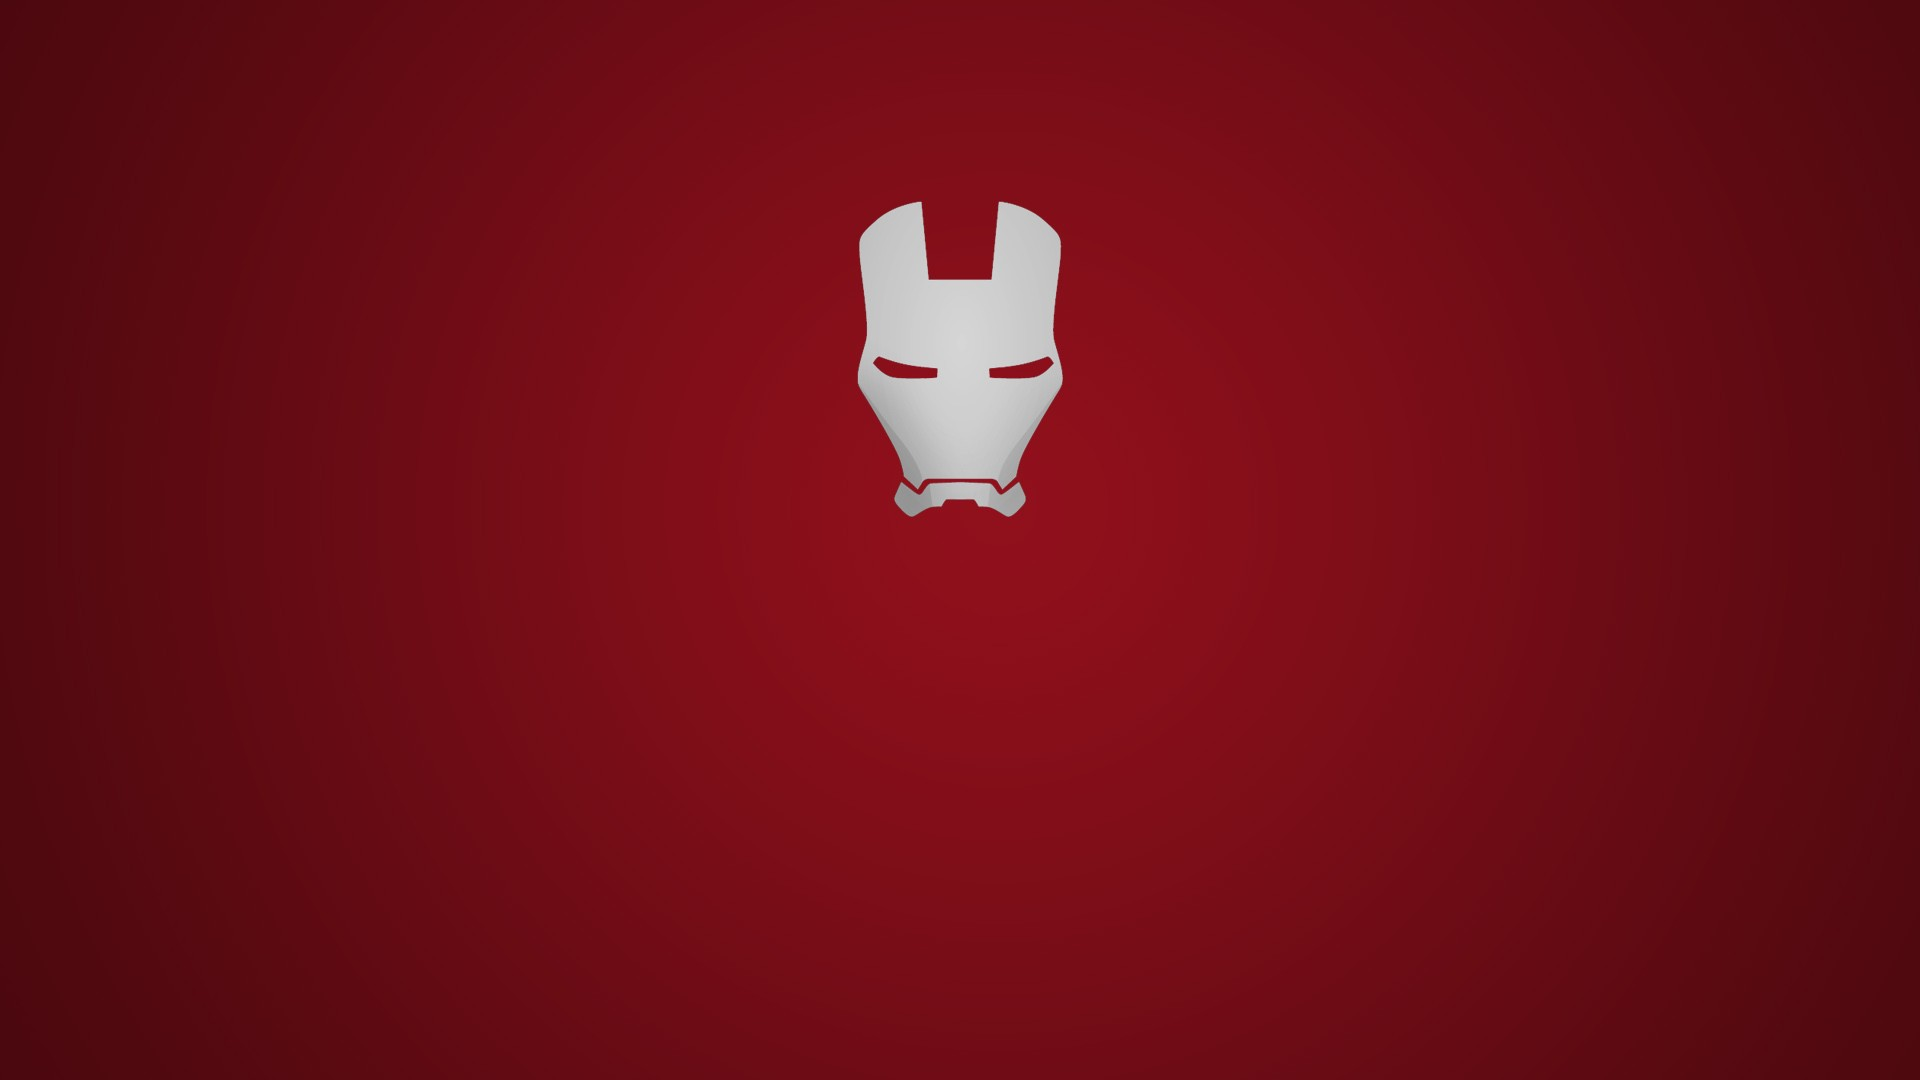 Iron Man Simple 1, HD Artist, 4k Wallpapers, Images ...